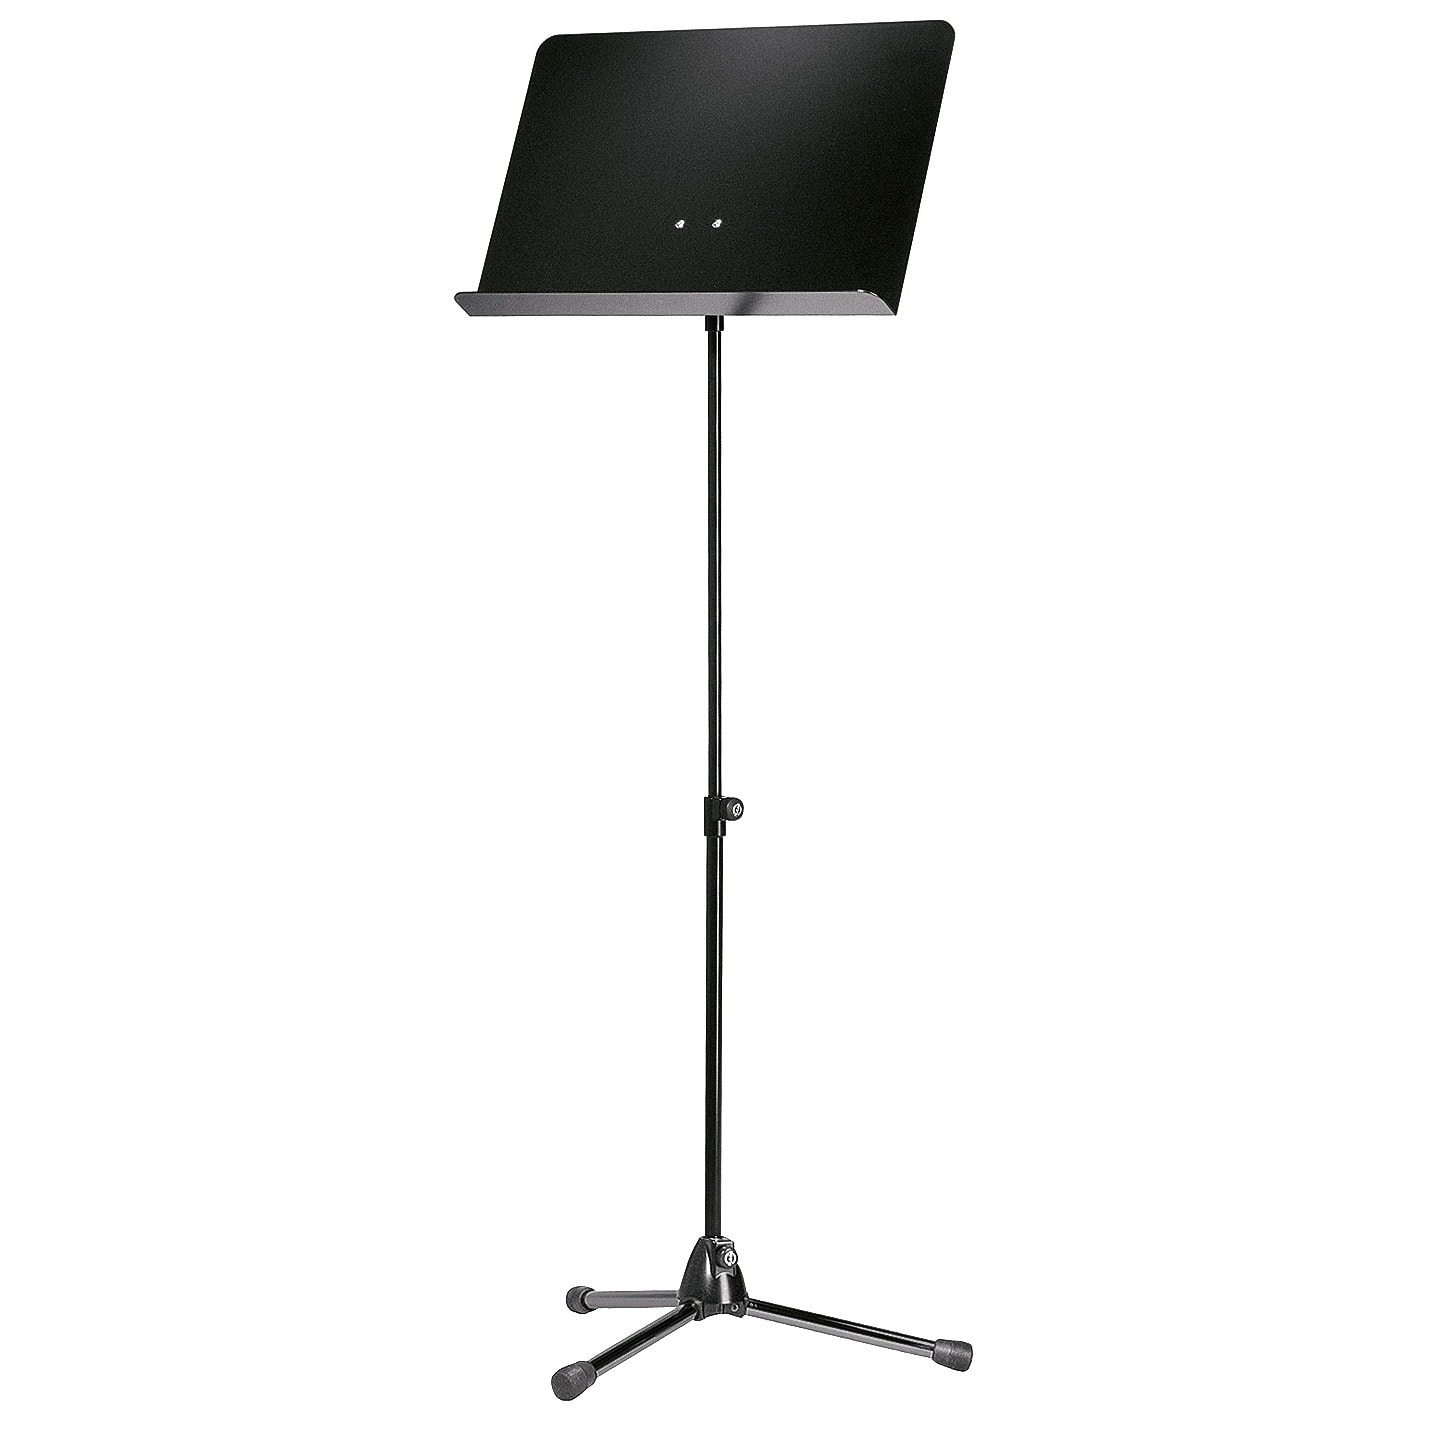 KM11818 - Orchestra music stand